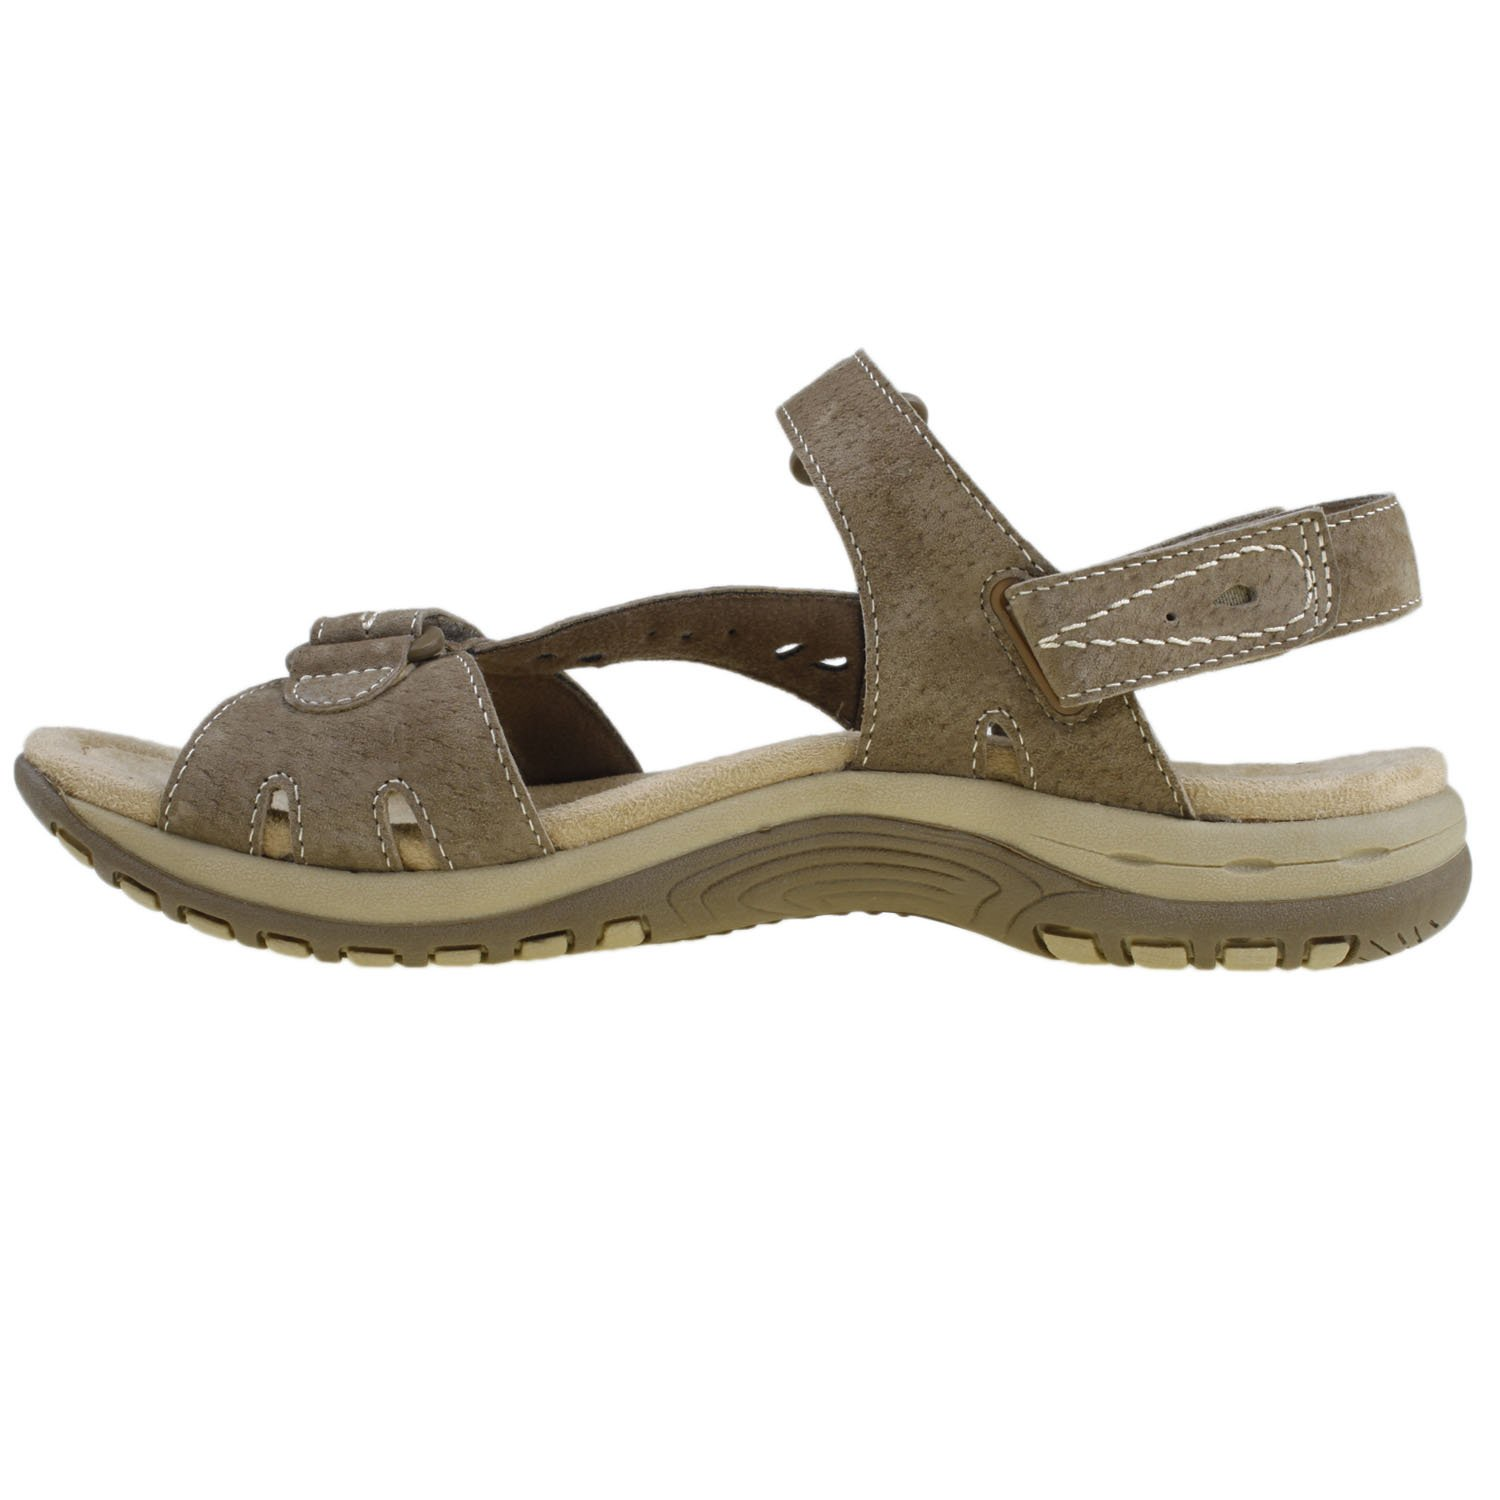 Earth Origins Women's Sophie Sandals B018QTT88G 8 B(M) US|Sedona Brown